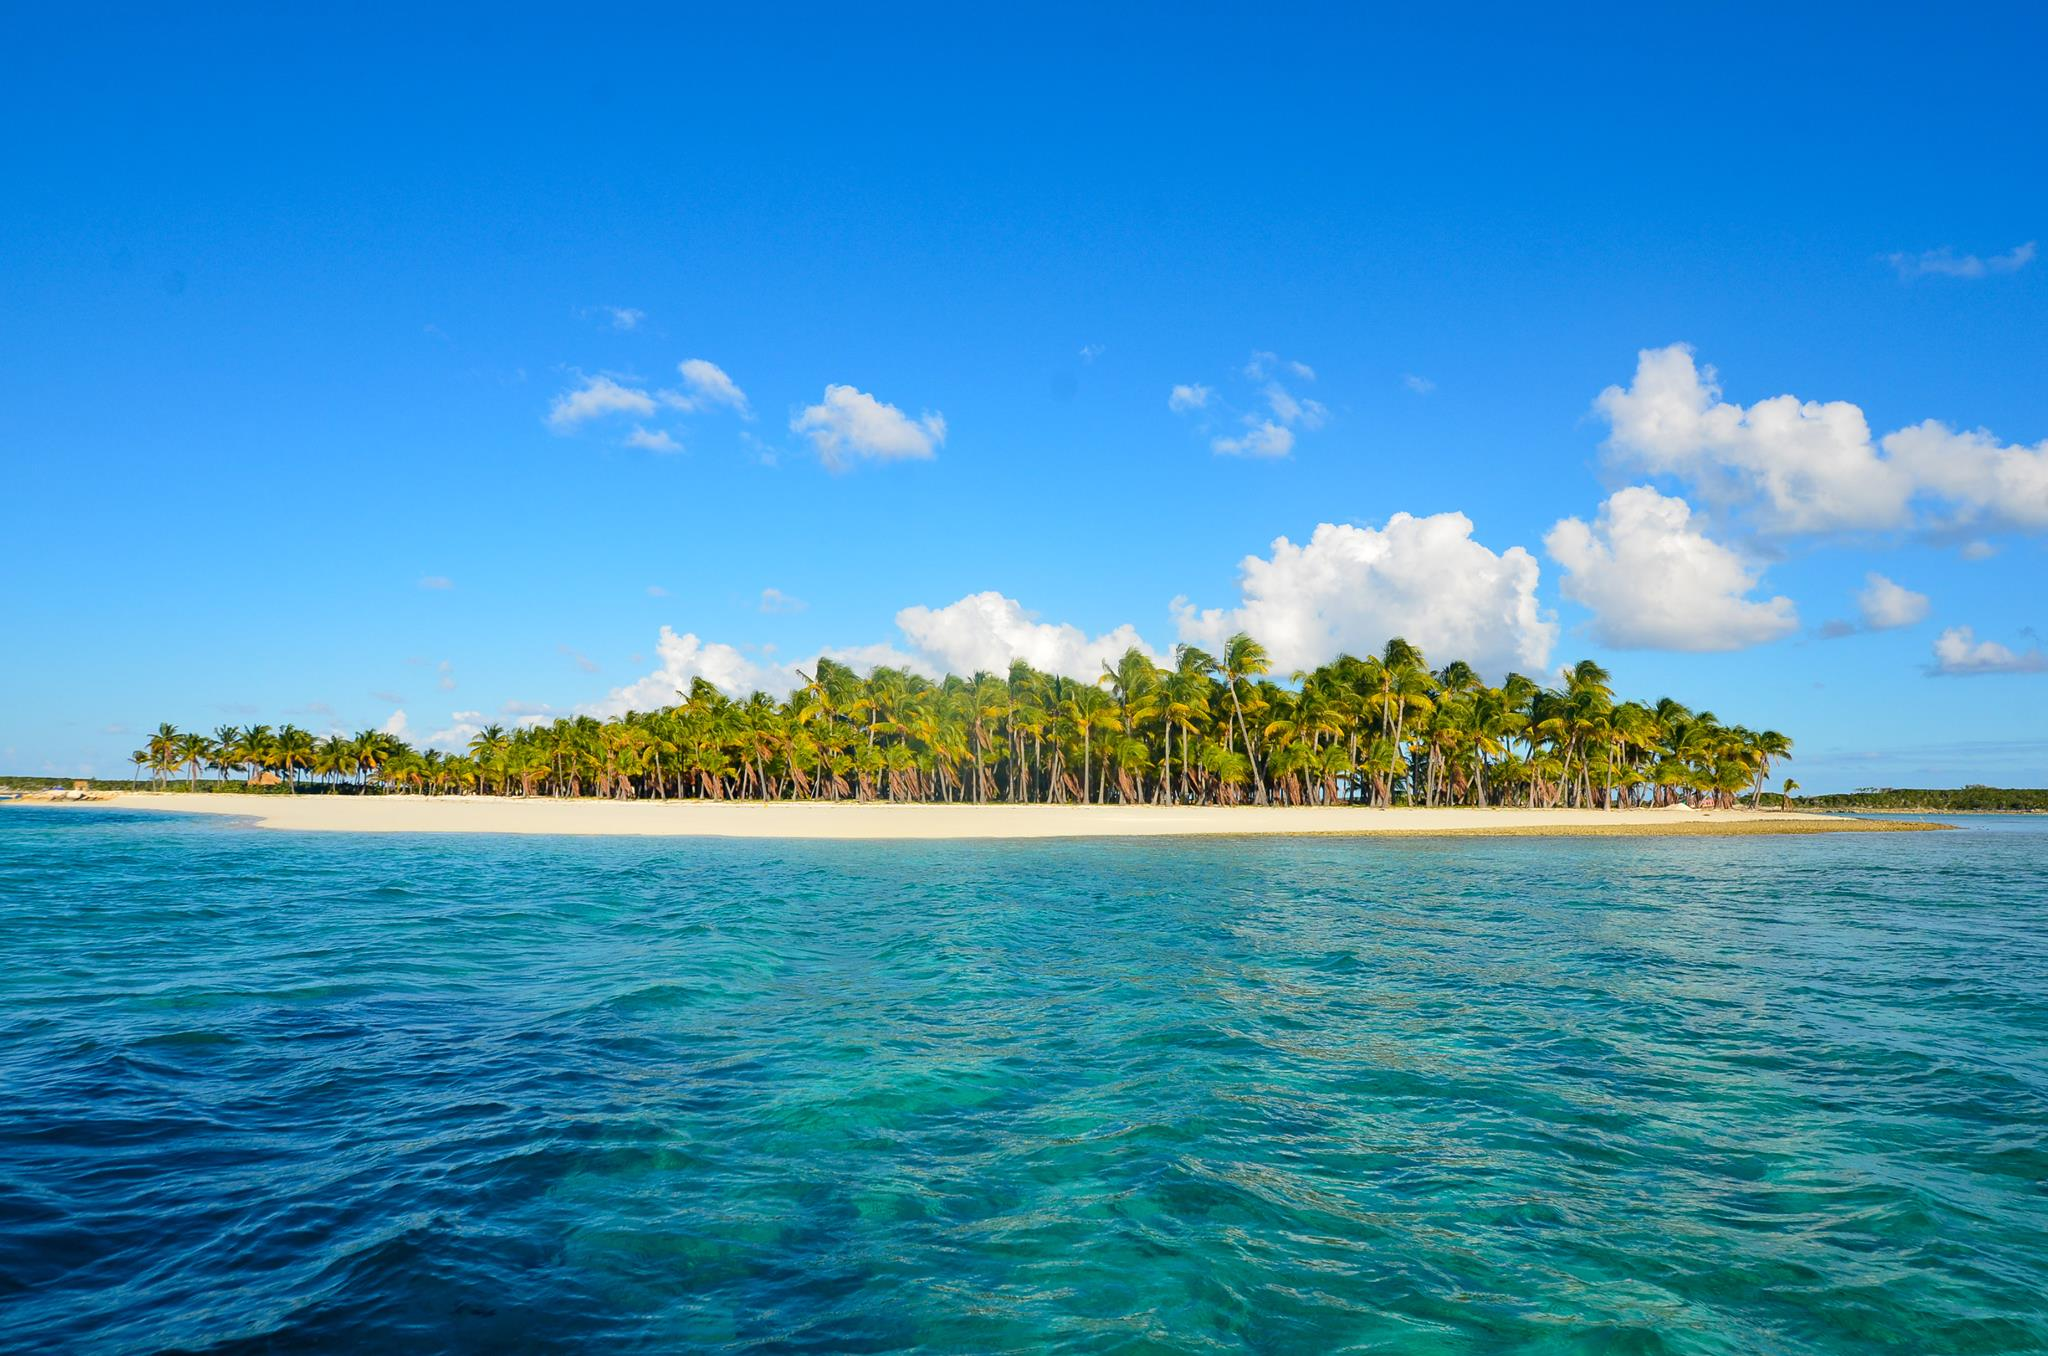 Bahamas Wallpapers High Quality Download Free